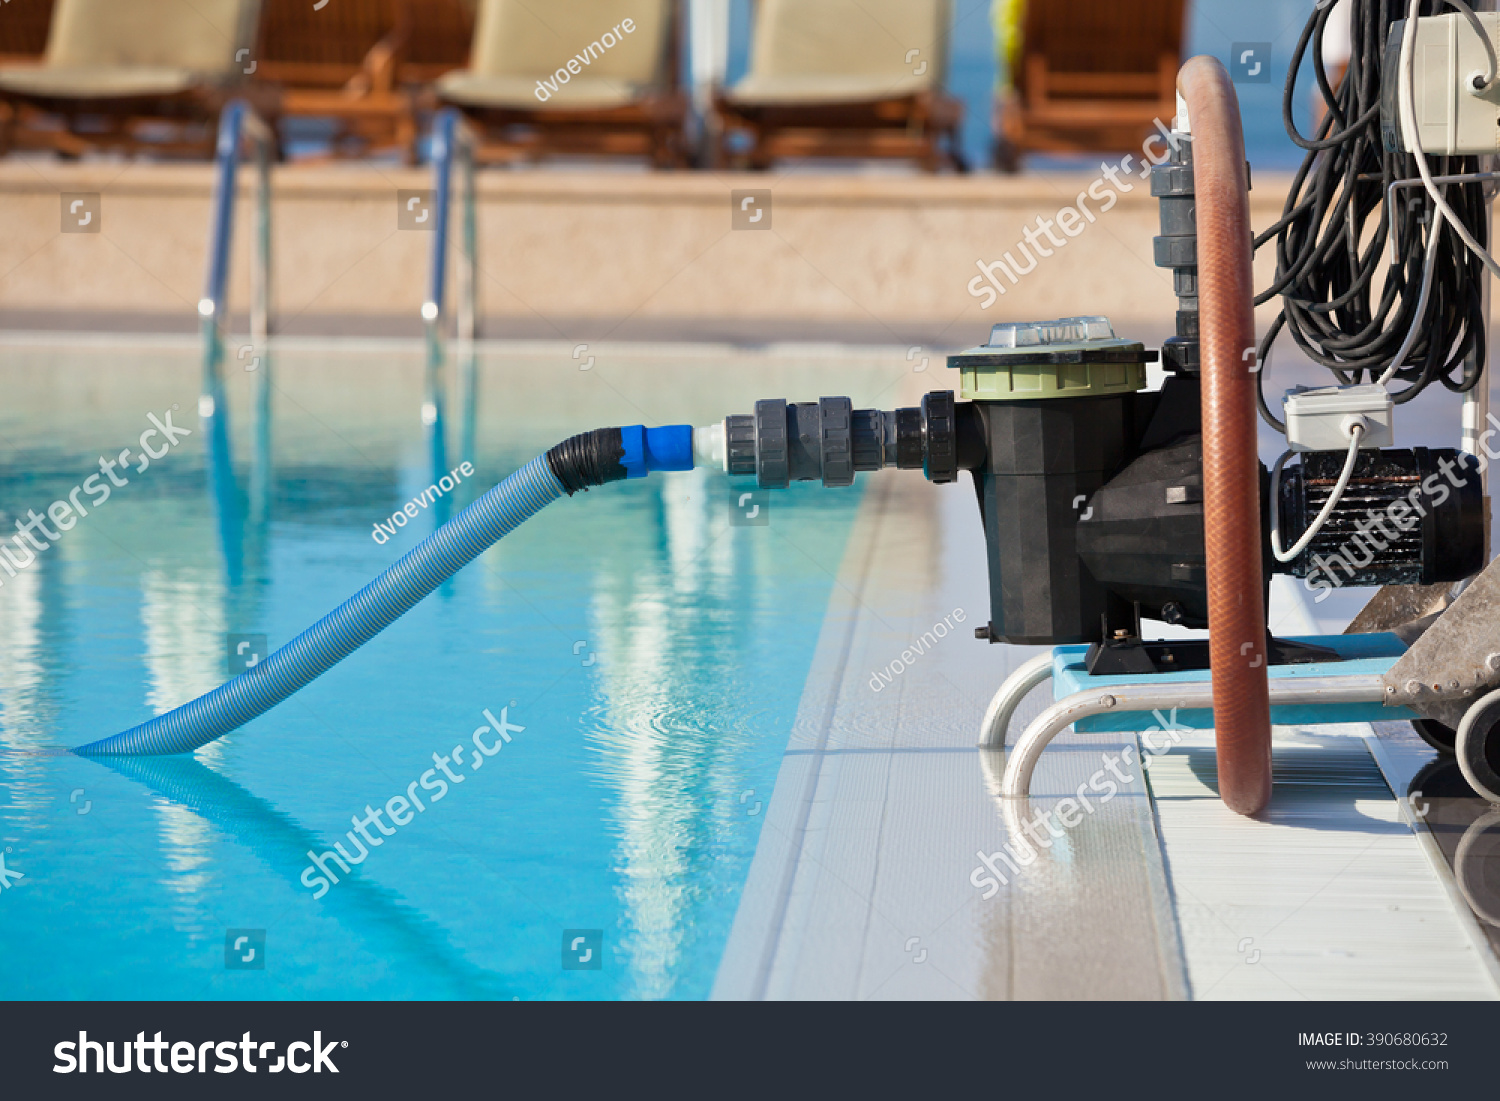 Cleaning Swimming Pool Pump : Cleaning pump working swimming pool horizontal stock photo